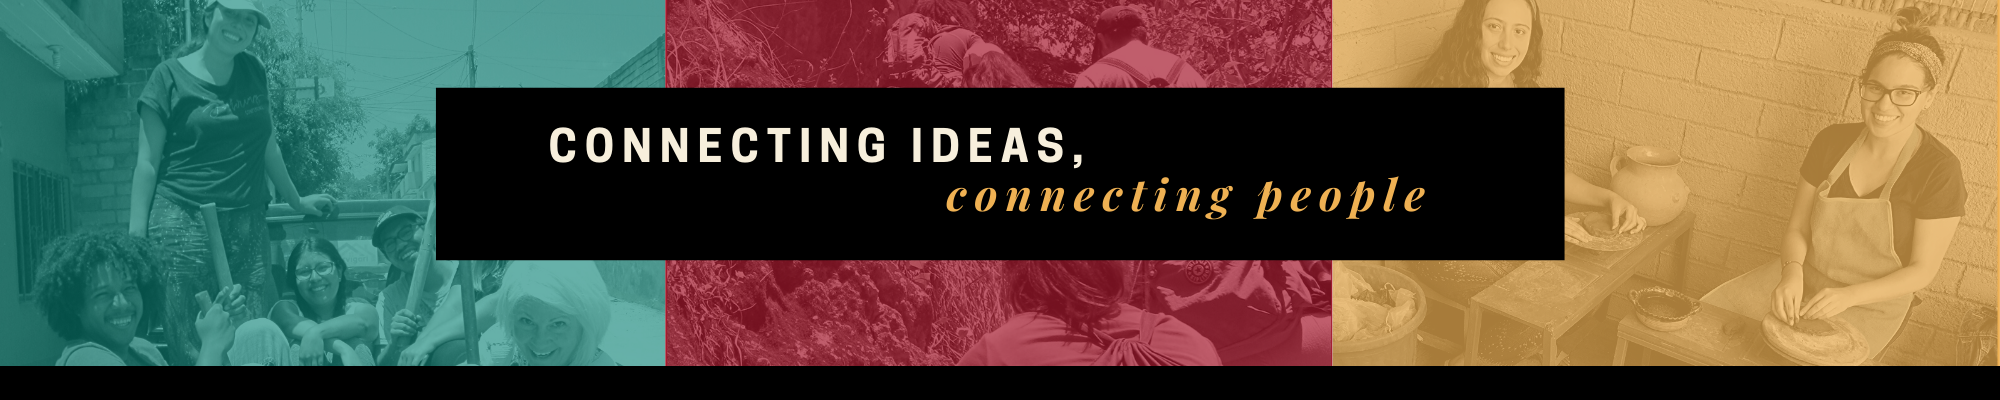 Connecting Ideas, Connecting People